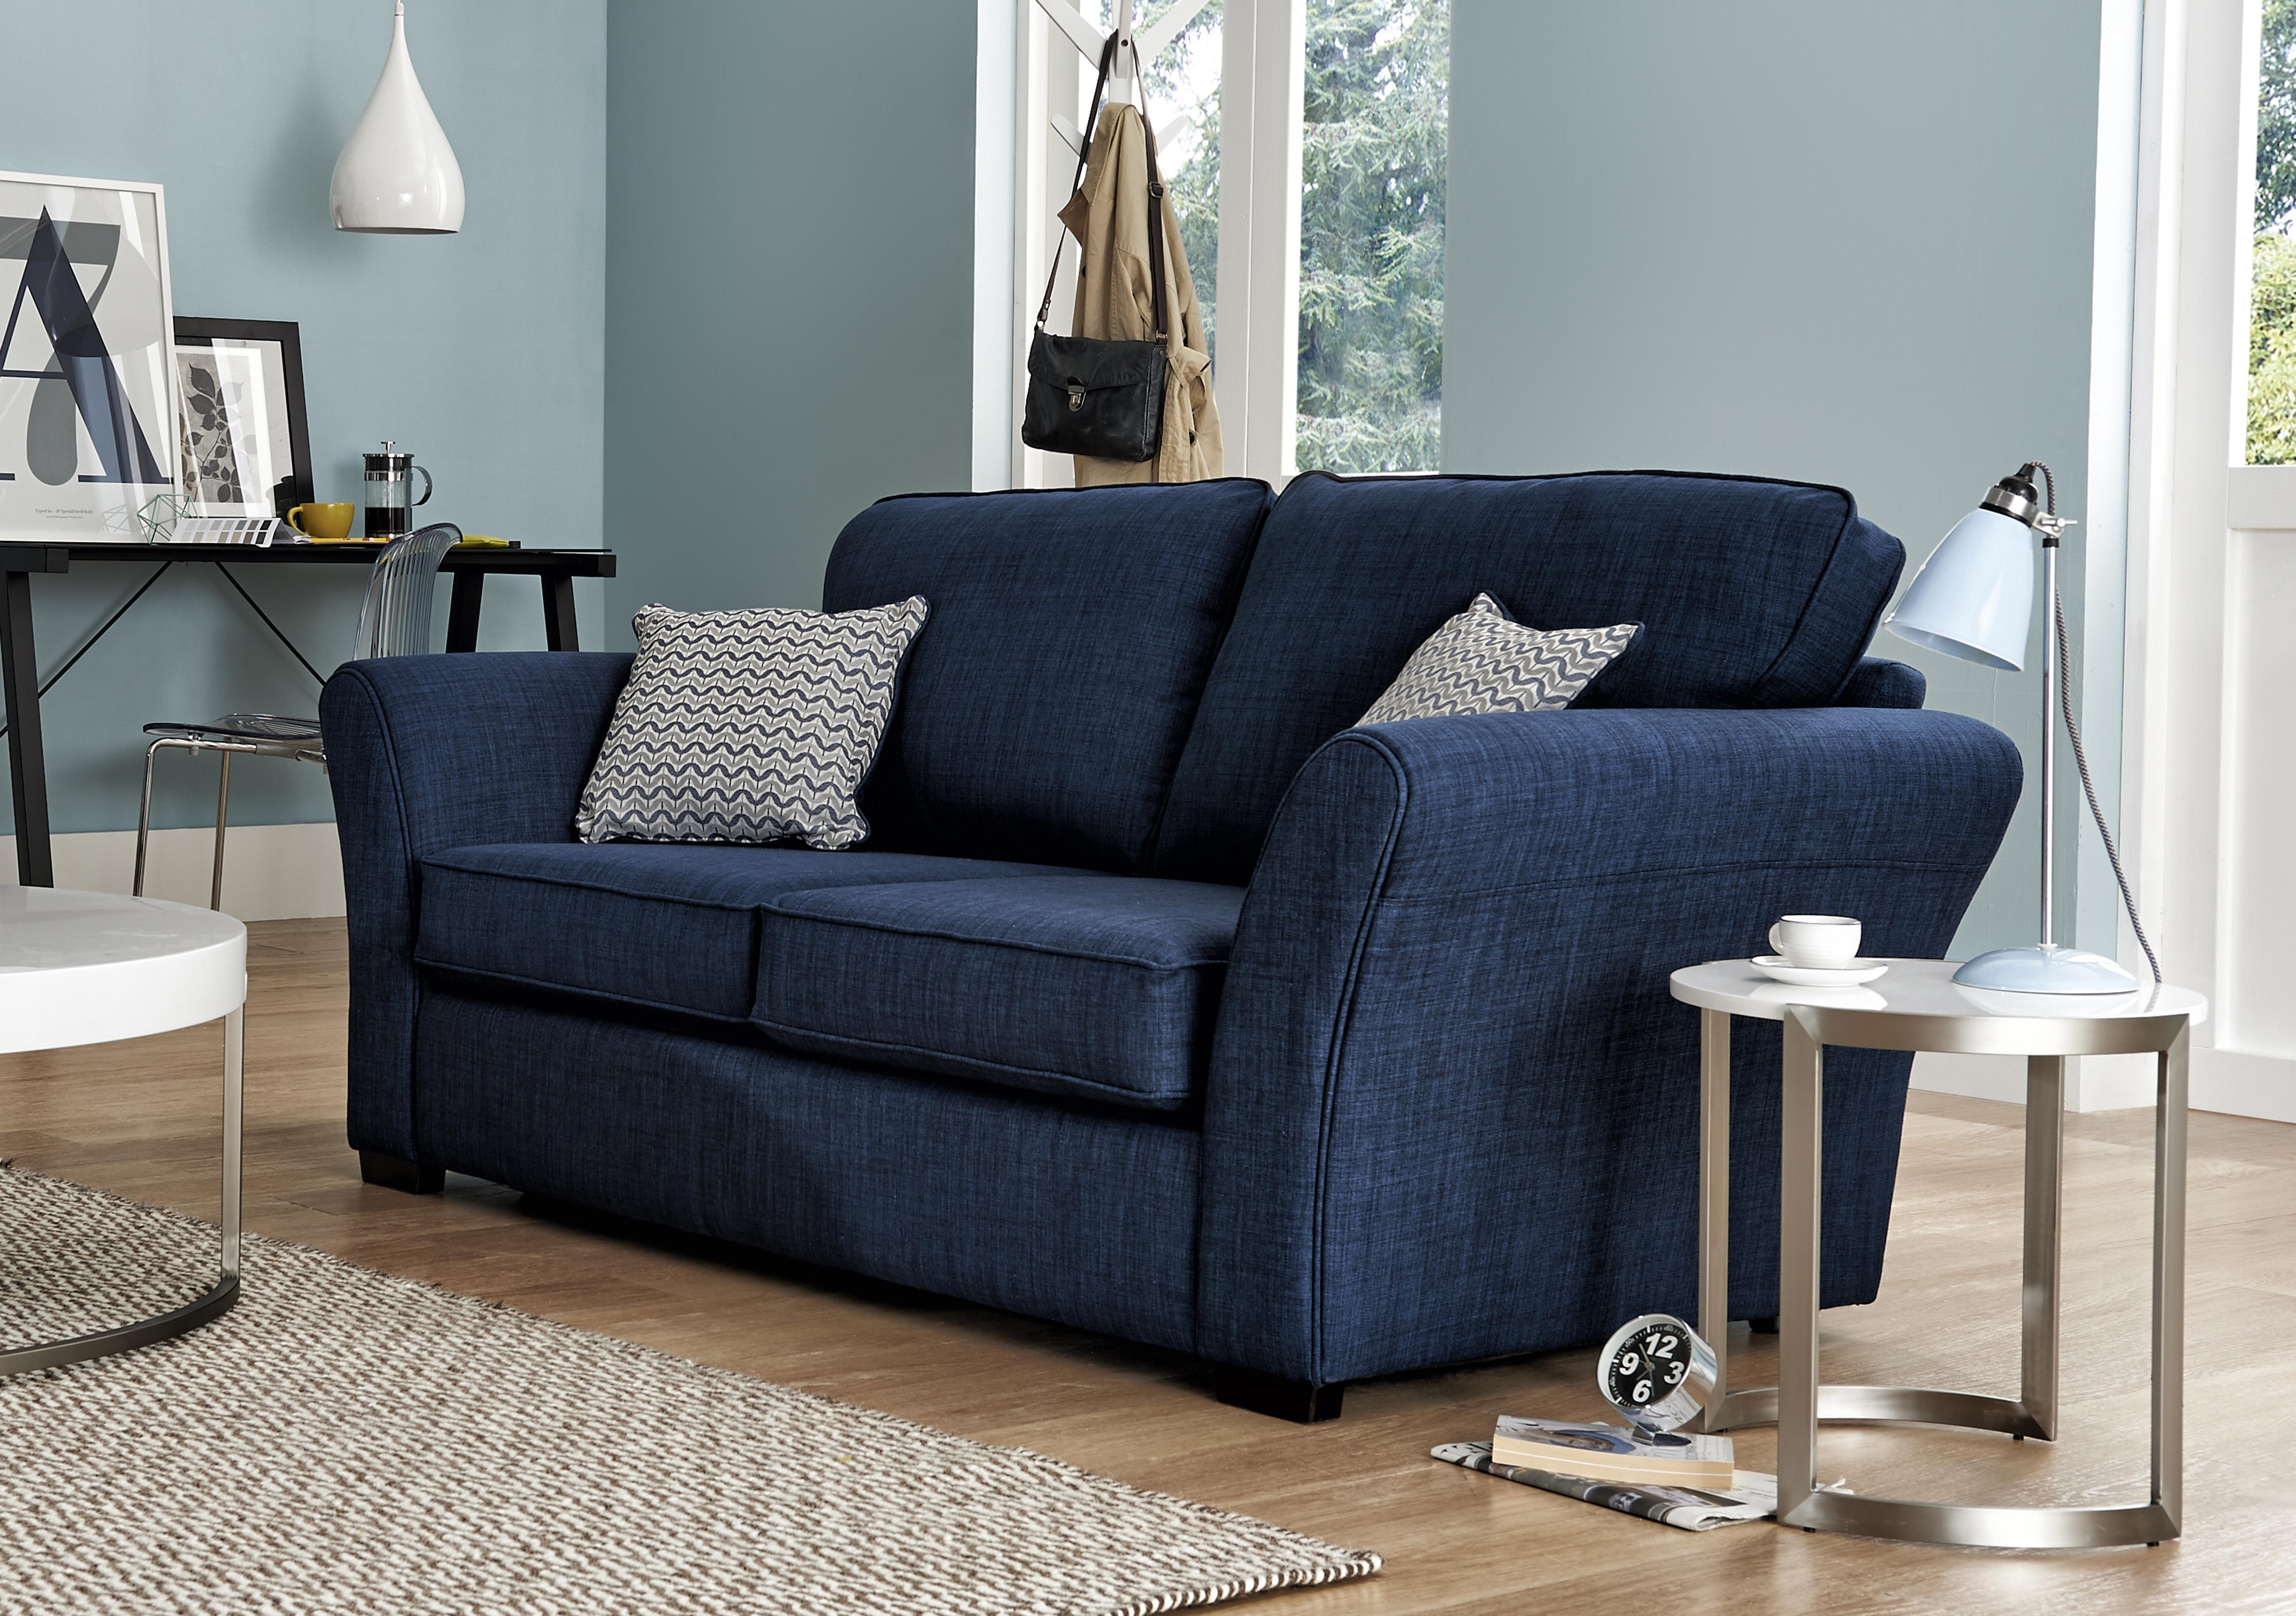 Great Twilight 2 Seater Fabric Sofa. Loading Images